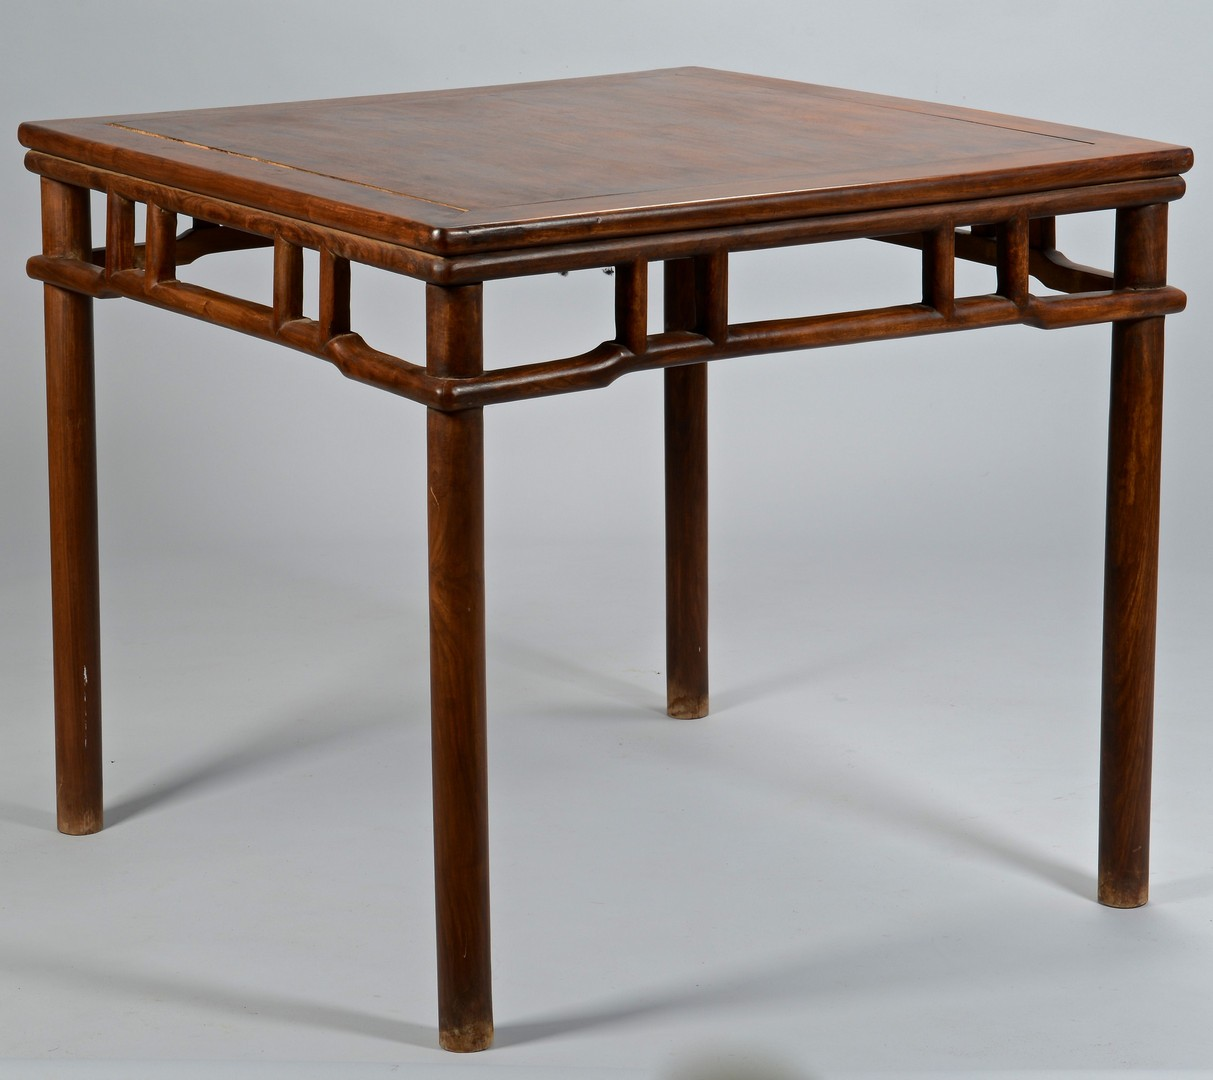 Lot 3383159: Chinese Hardwood Square Table